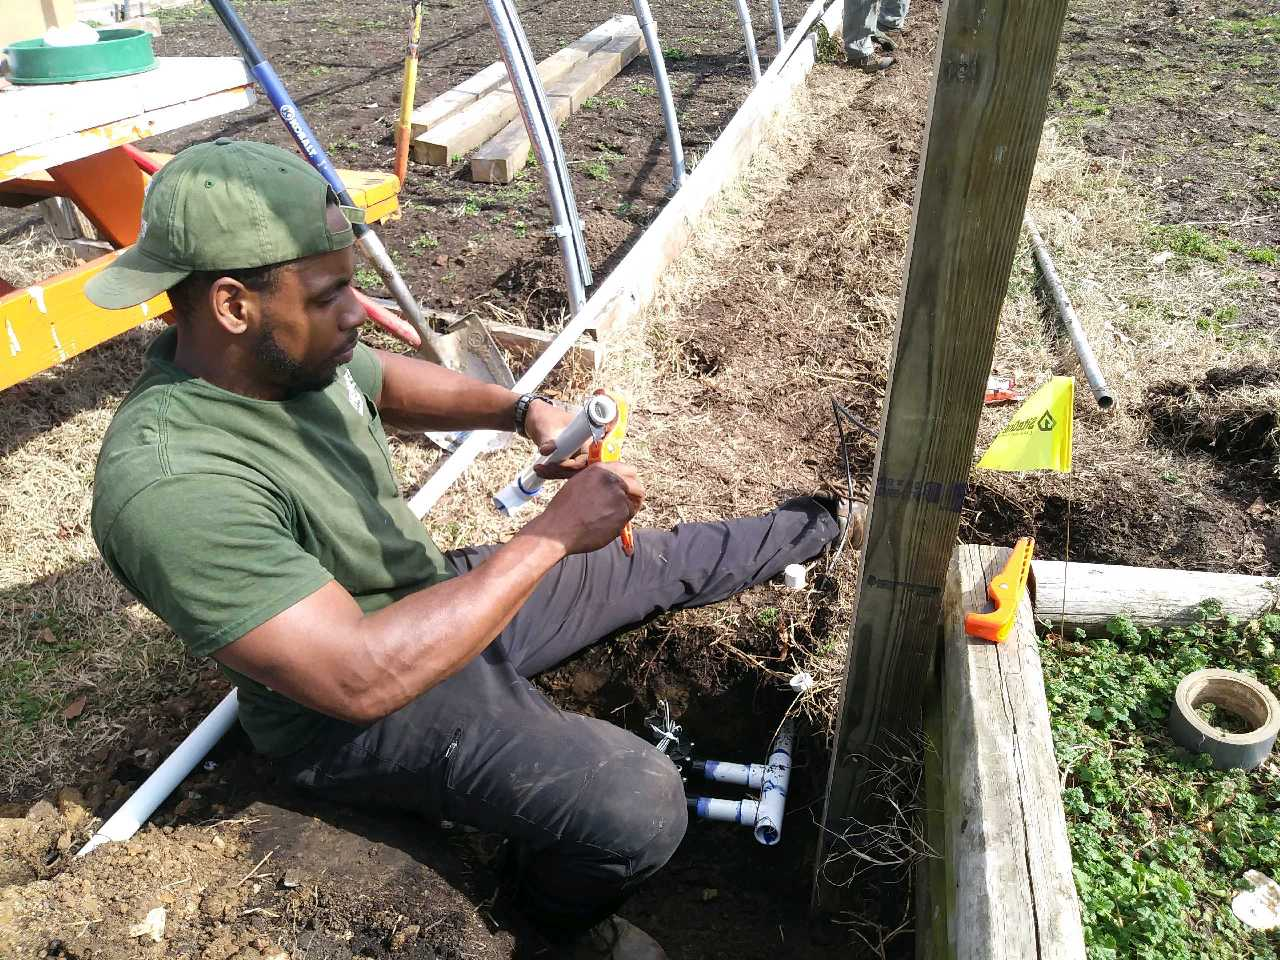 Oliver Community Farm: Irrigation on the Front Lines